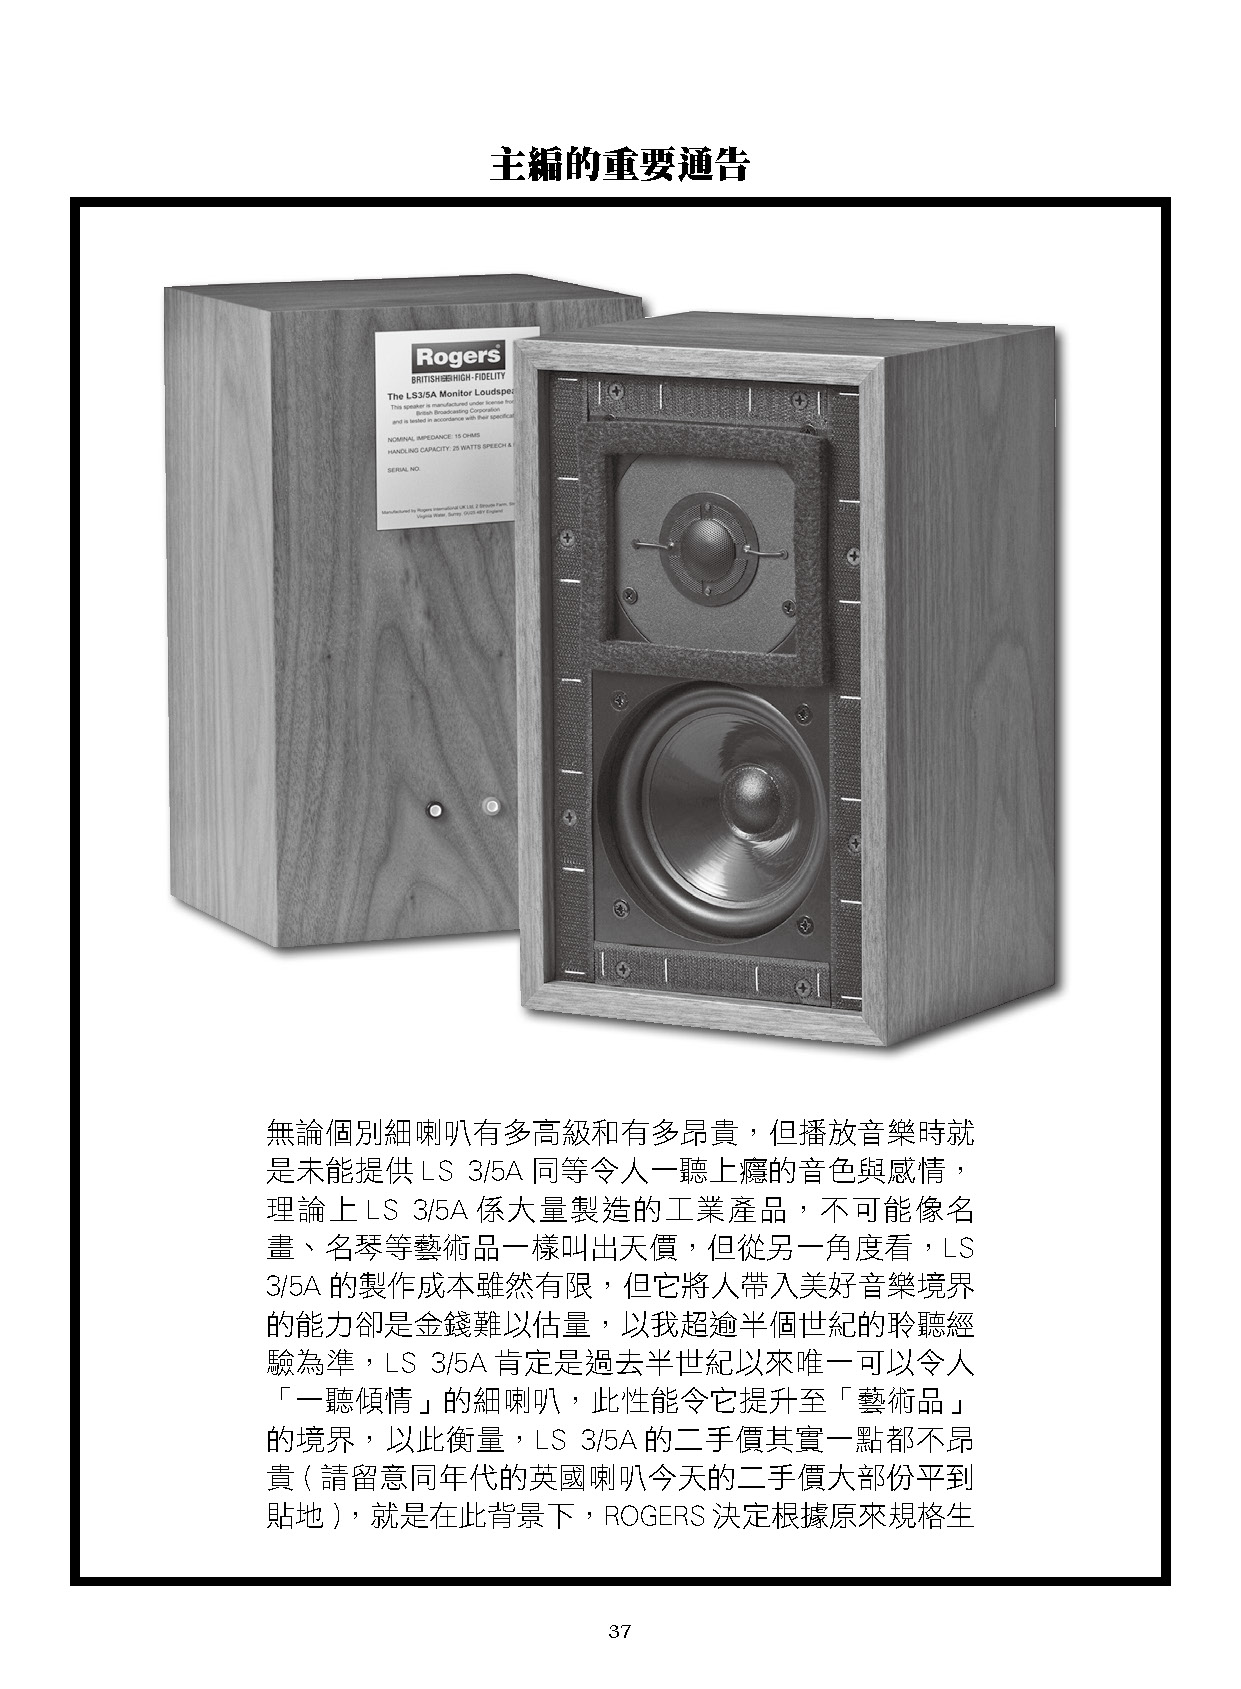 ROGERS LS3-5A - Audiophile 2019 Apr Issue 397 主編的重要通告_Page_2.jpg